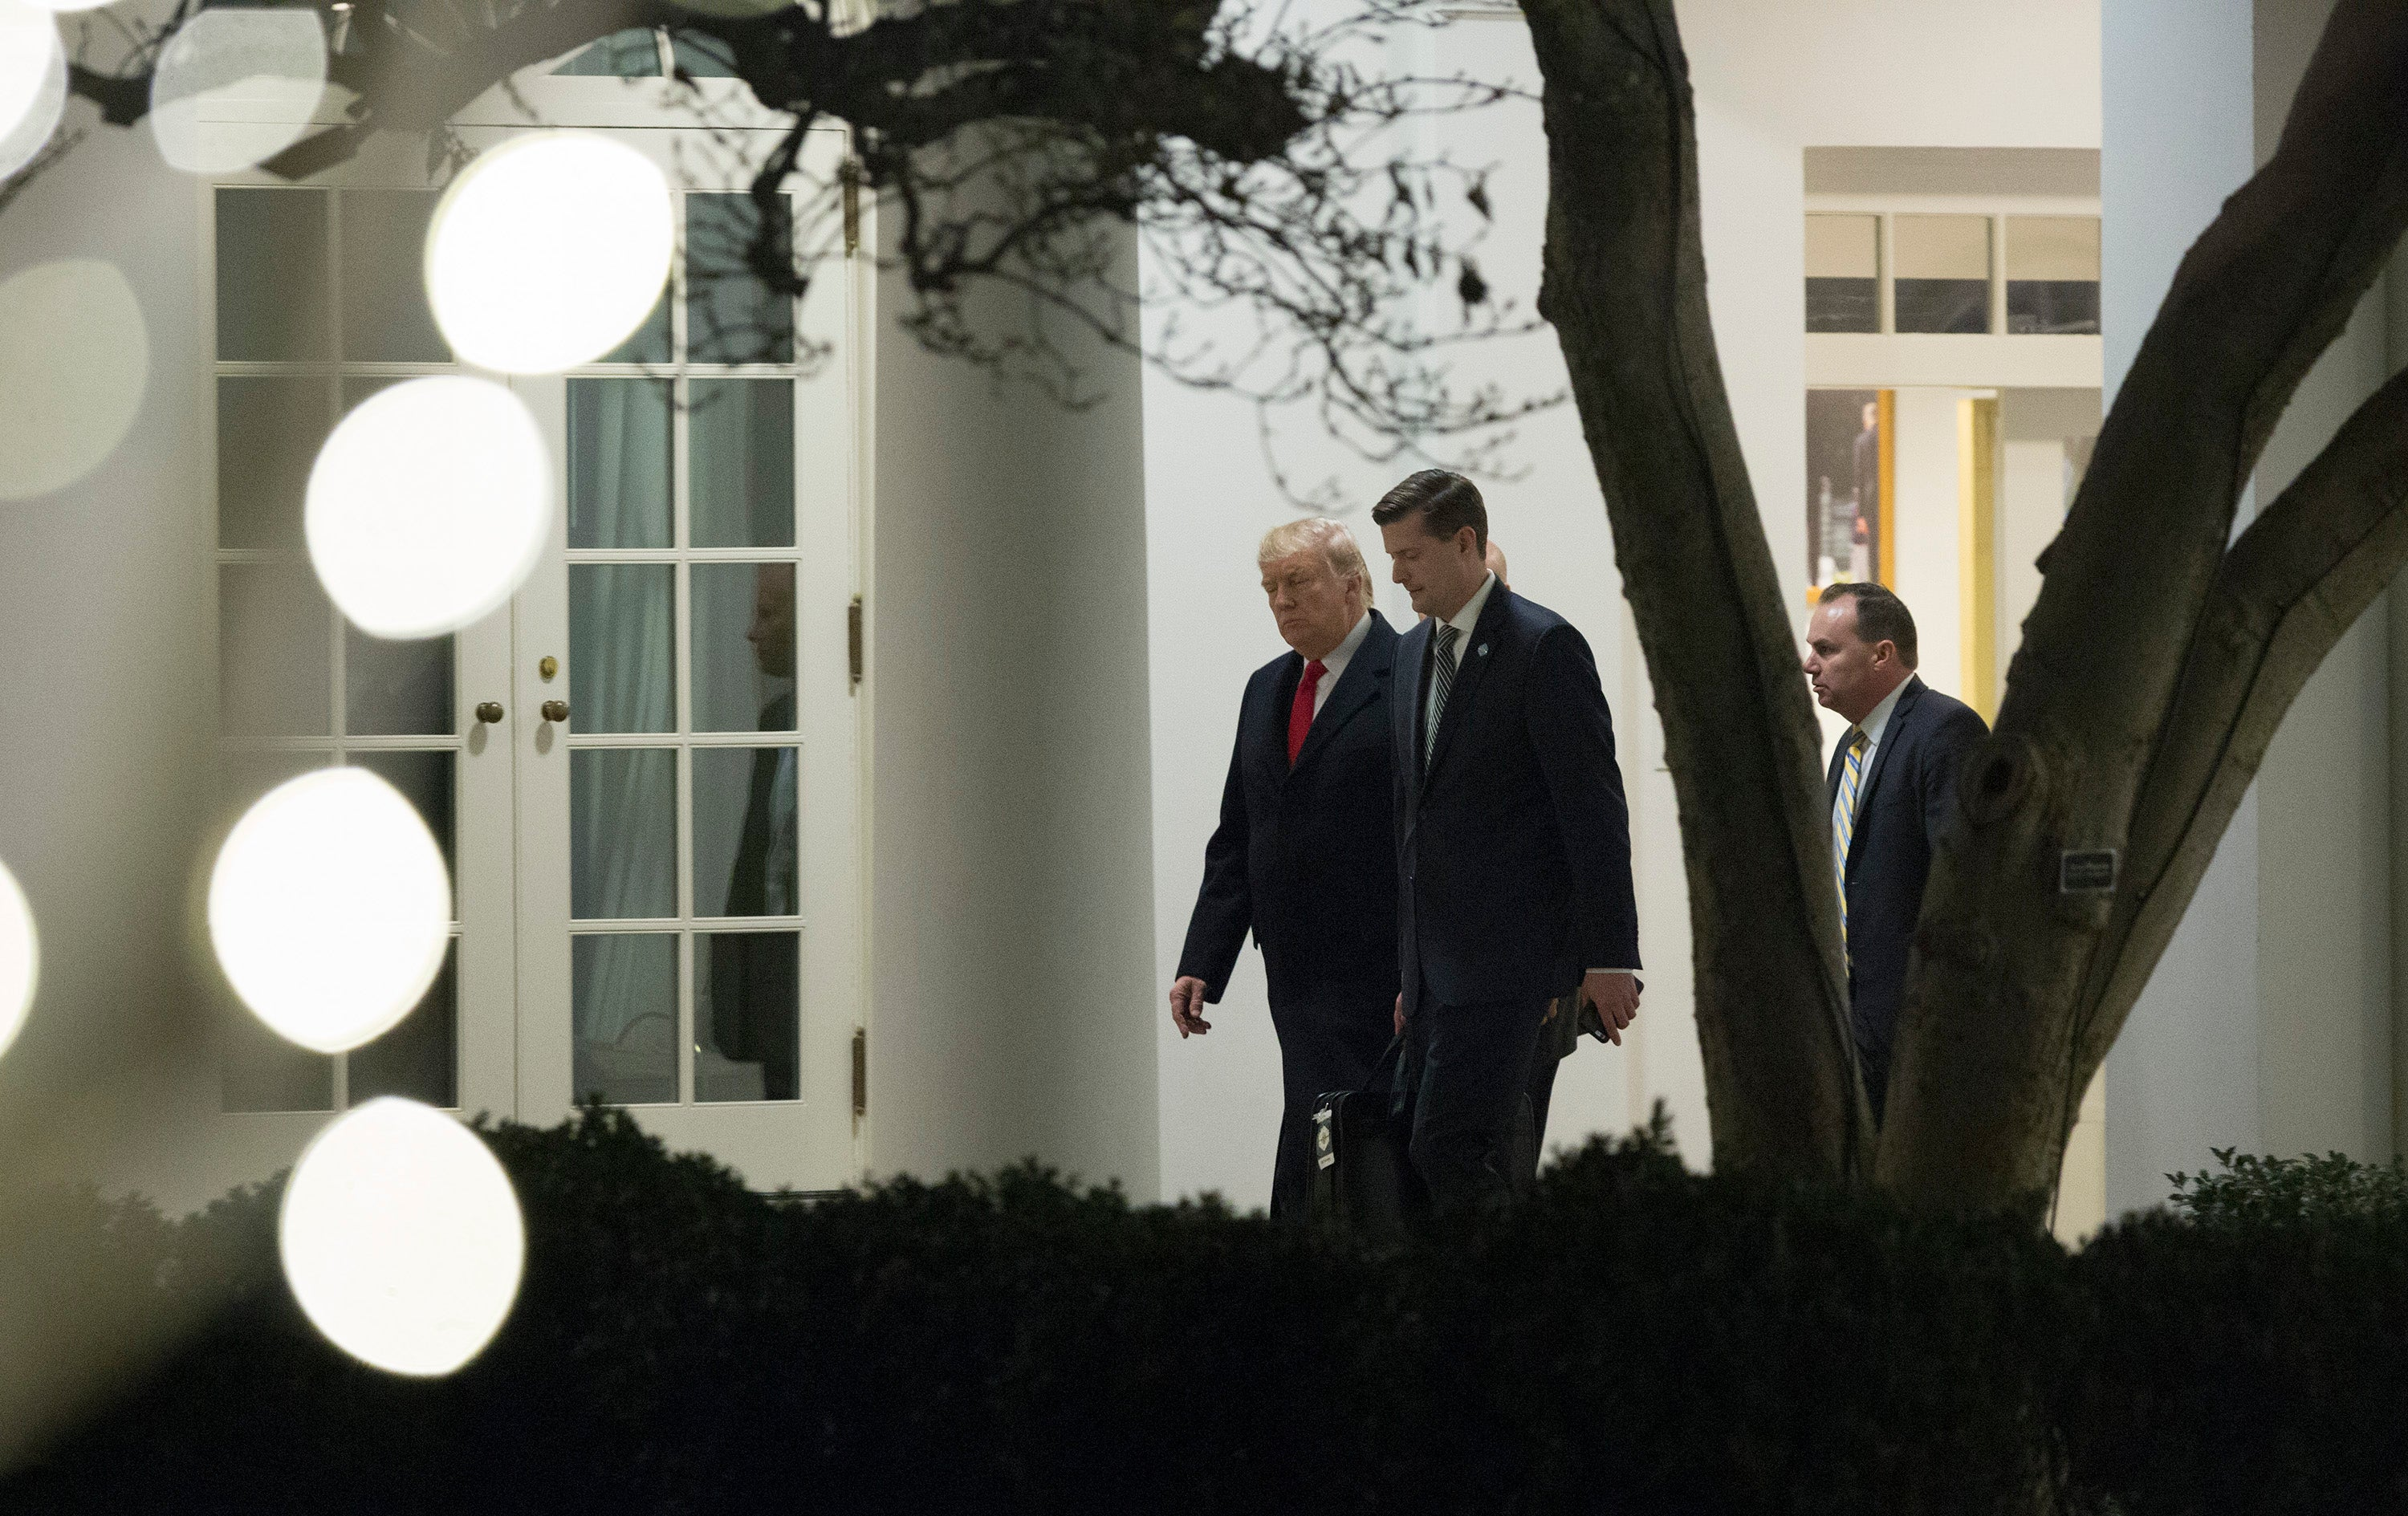 Donald Trump with Rob Porter and Utah Sen. Mike Lee on Dec. 4, 2017.